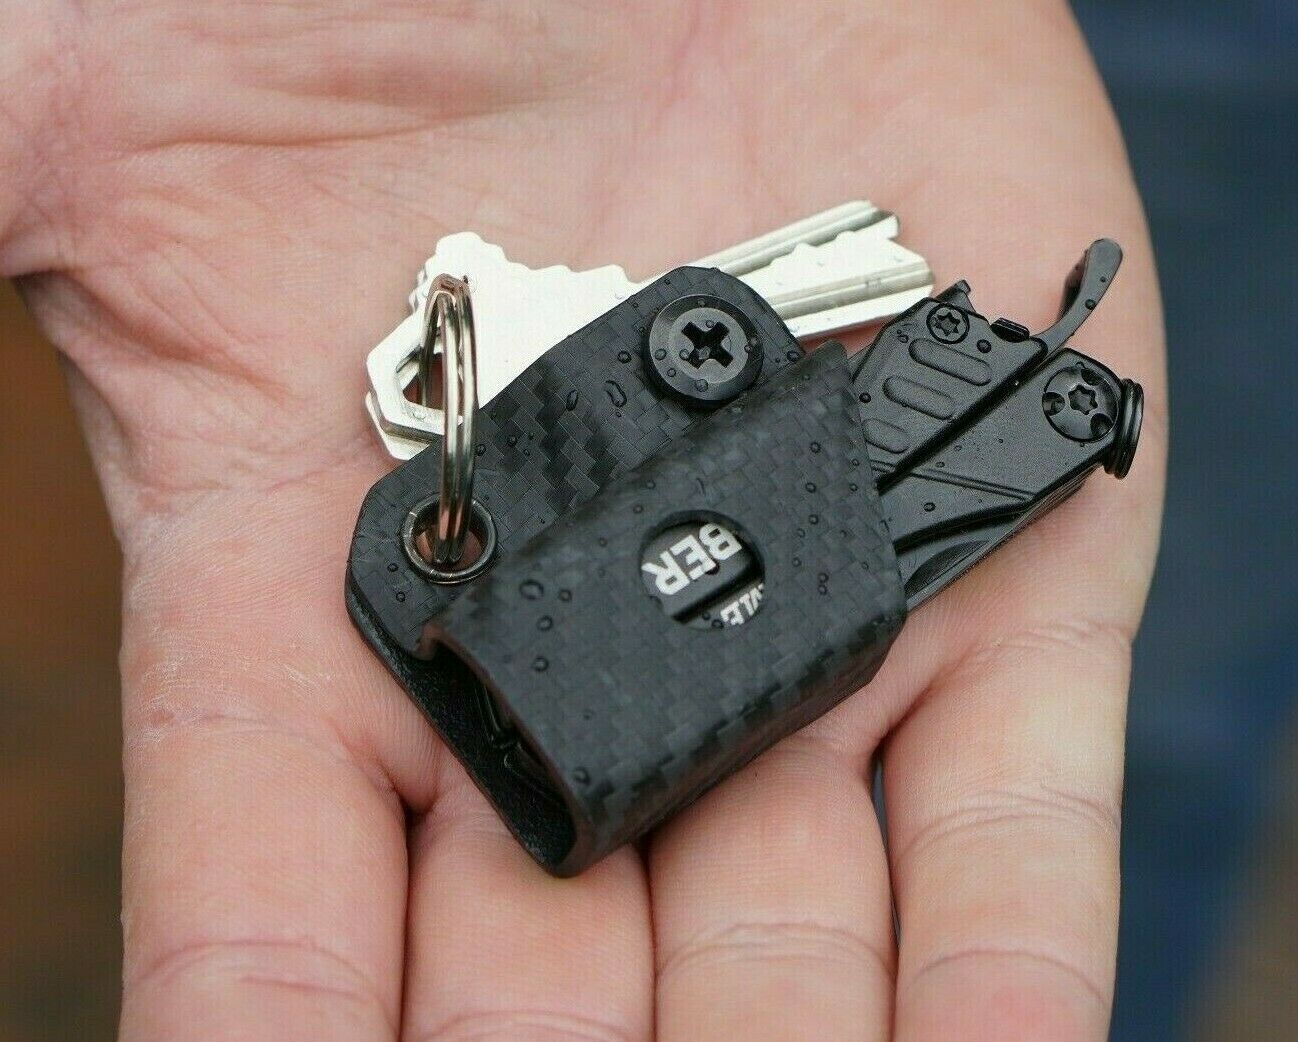 Clip & Carry Kydex Sheath for GERBER DIME & LEATHERMAN SQUIR